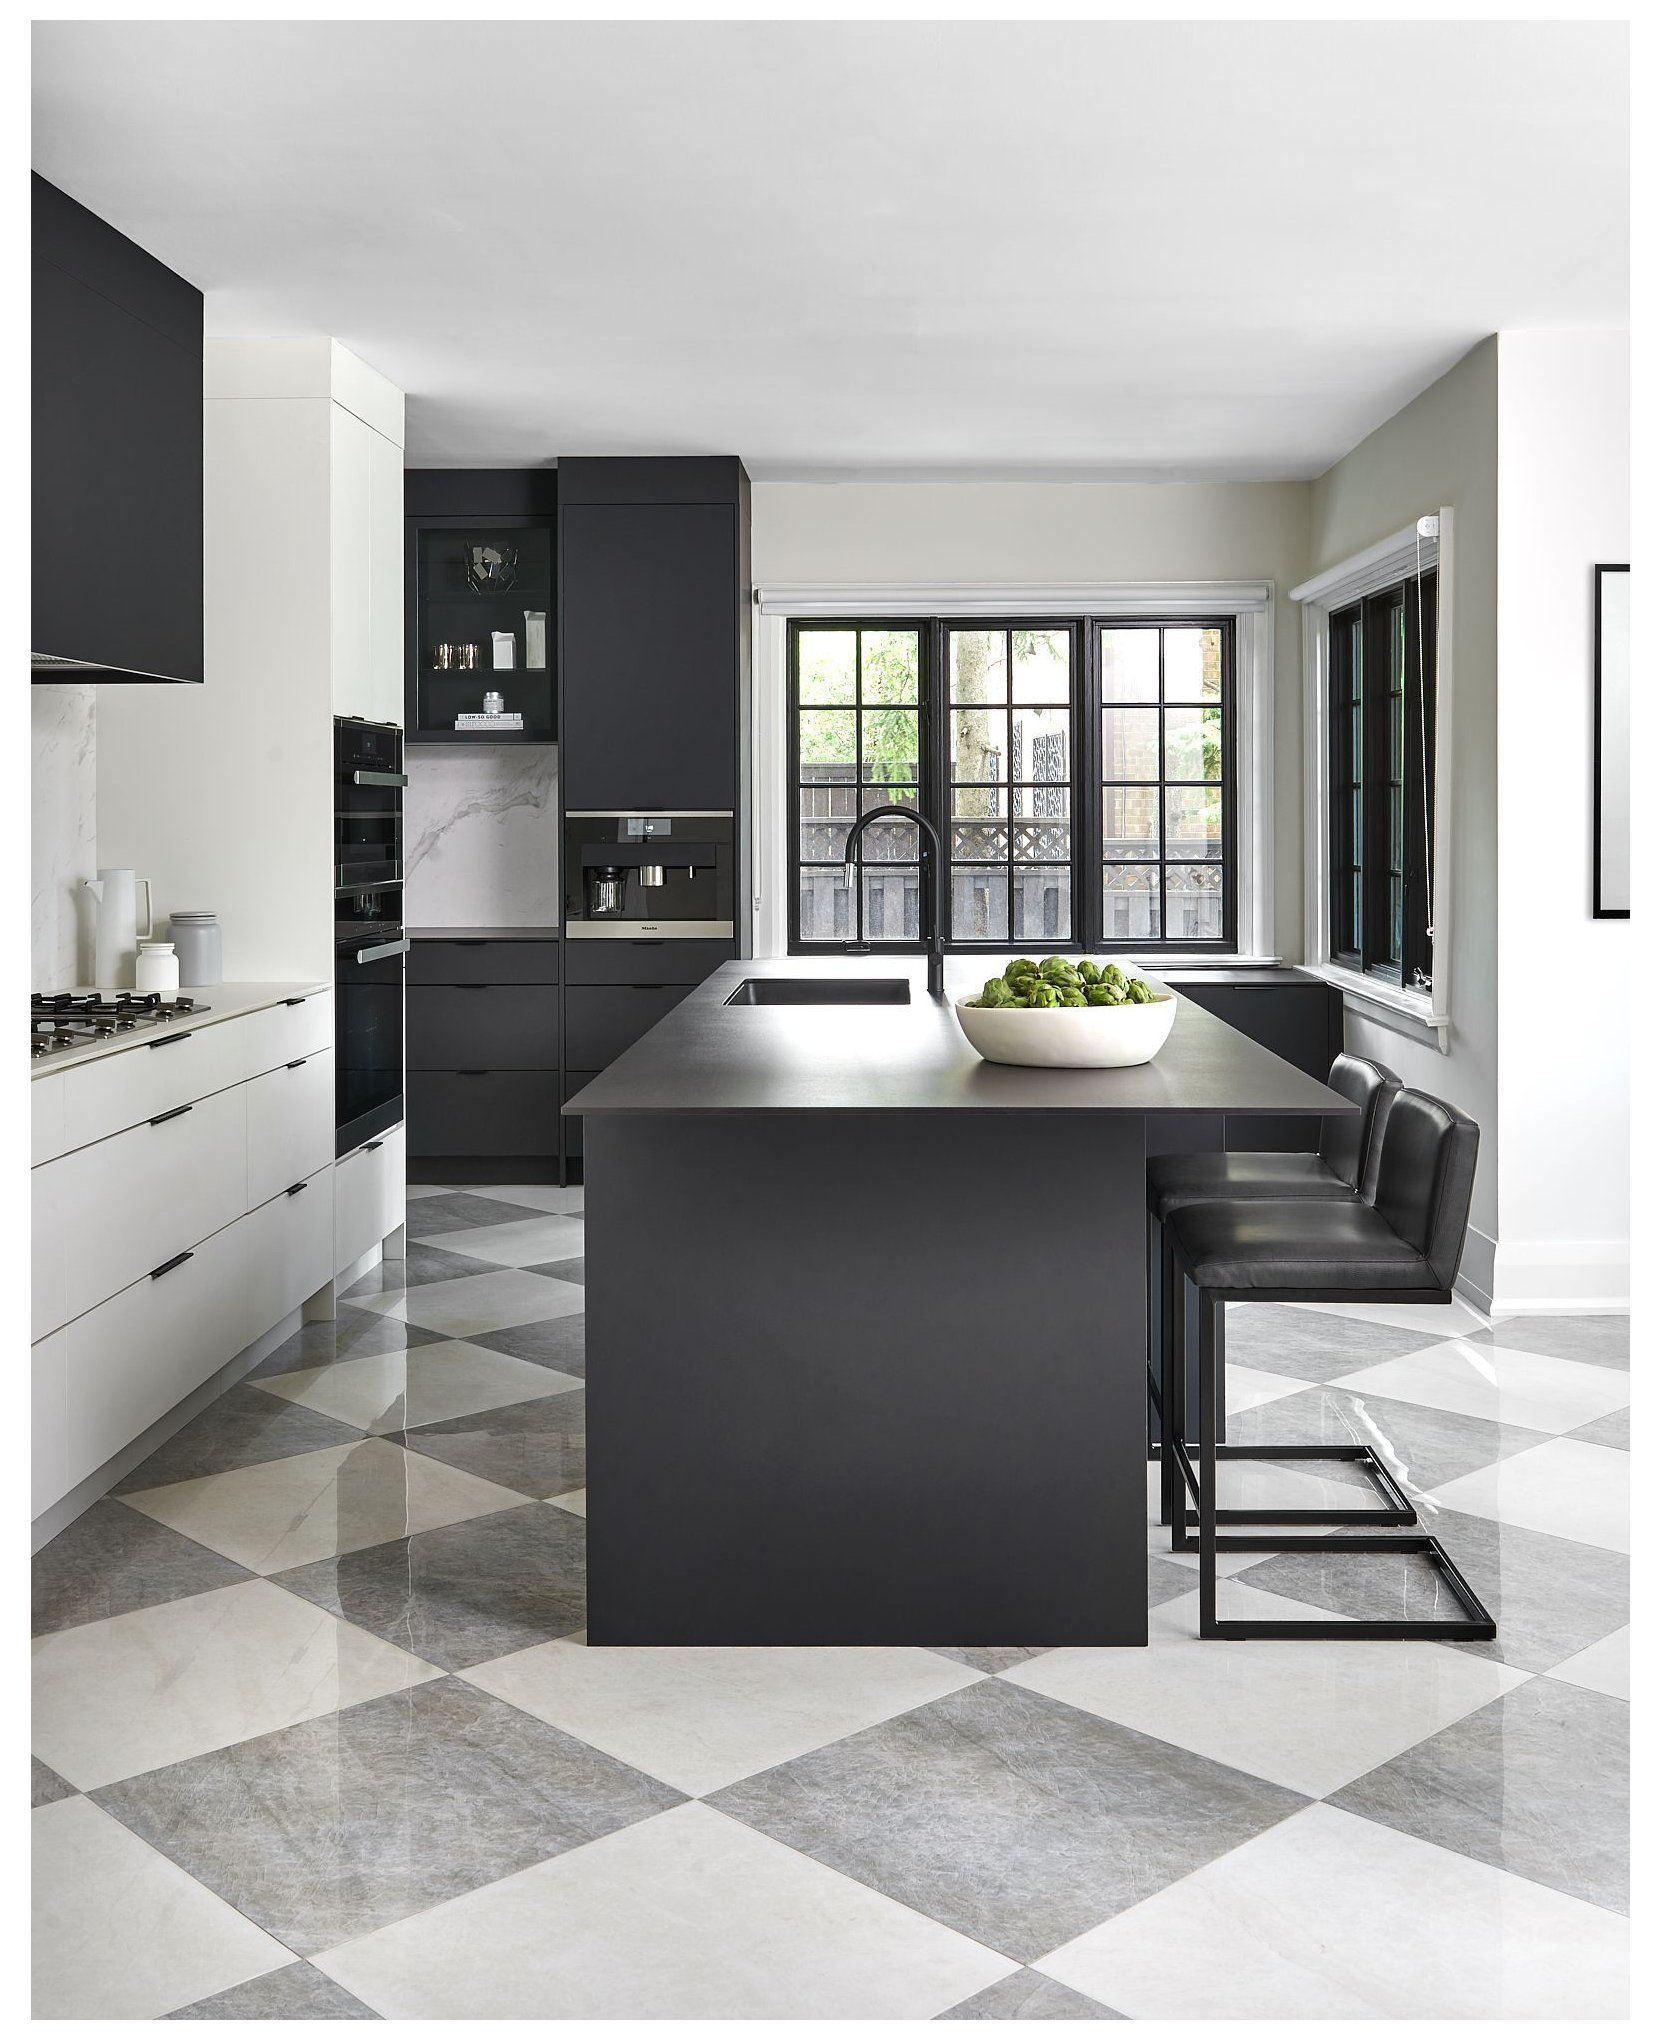 Black And White Kitchen With Checkered Floor Black And White Kitchen Floor Blackandwhite In 2021 White Kitchen Floor White Tile Kitchen Floor White Kitchen Tiles Black and white checkered kitchen floor